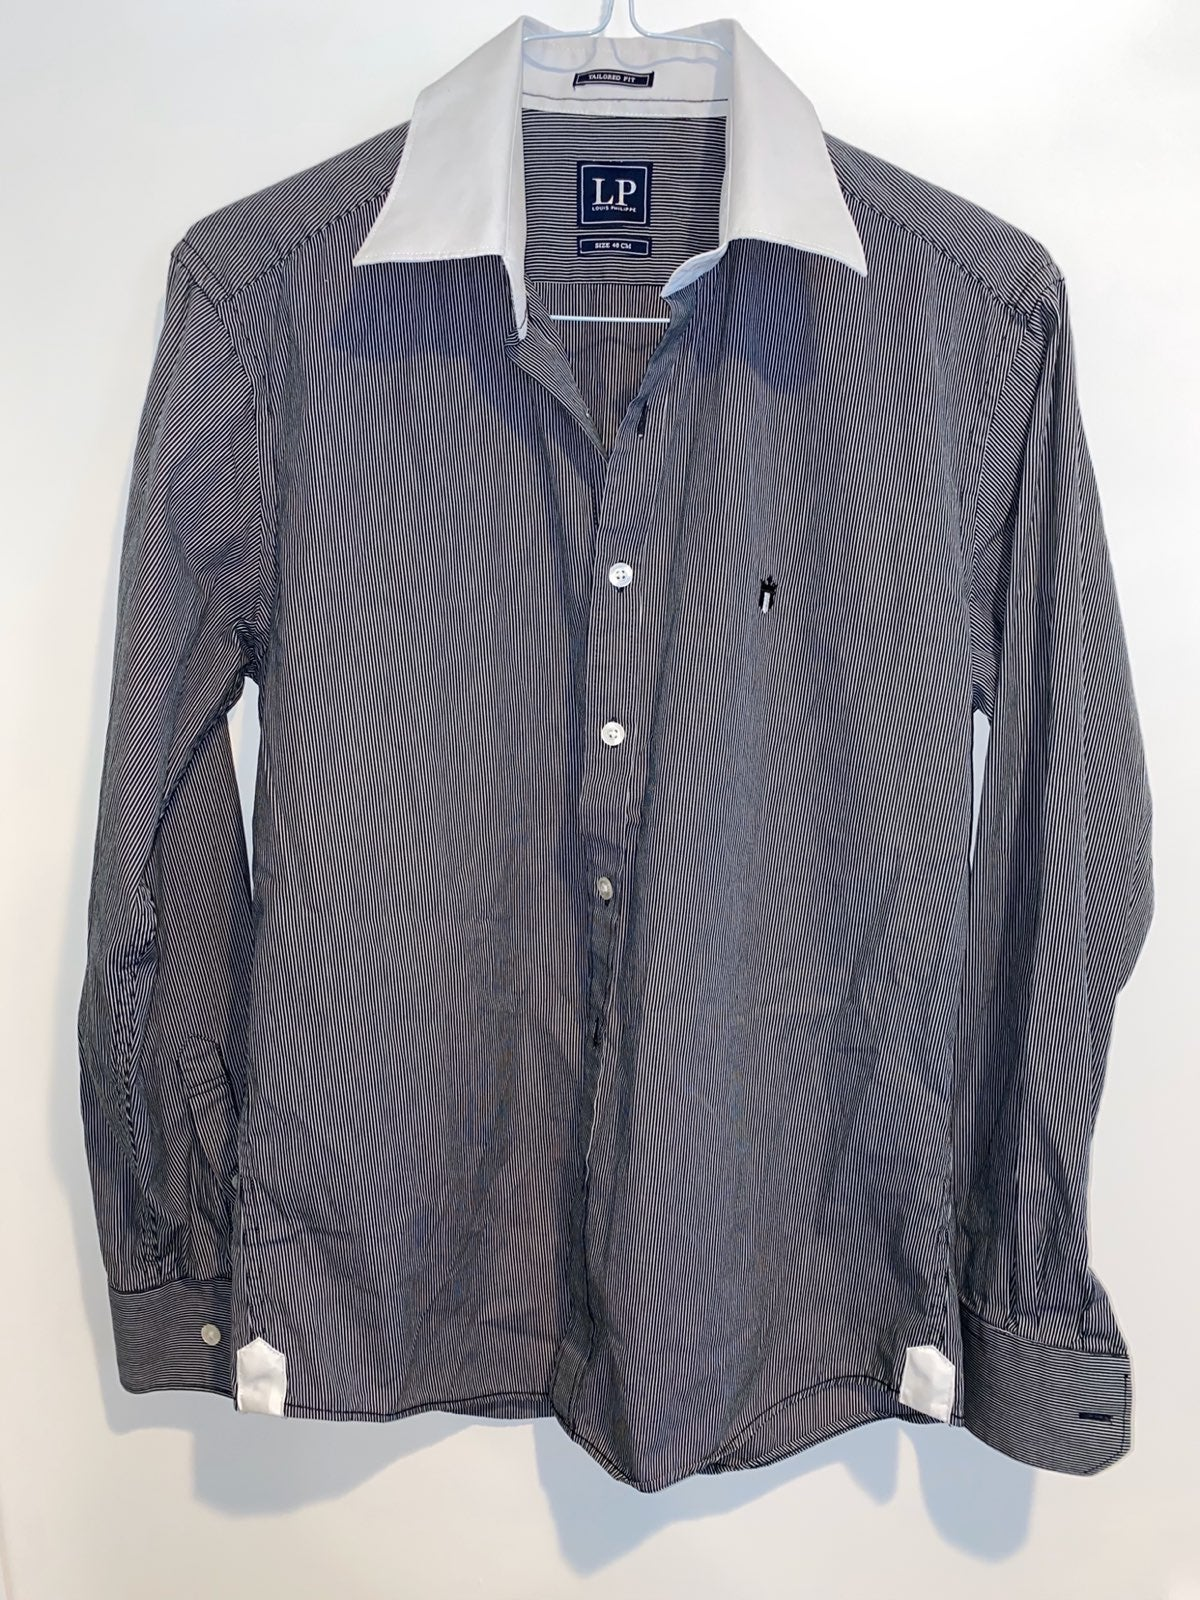 Louis philippe button down shirt